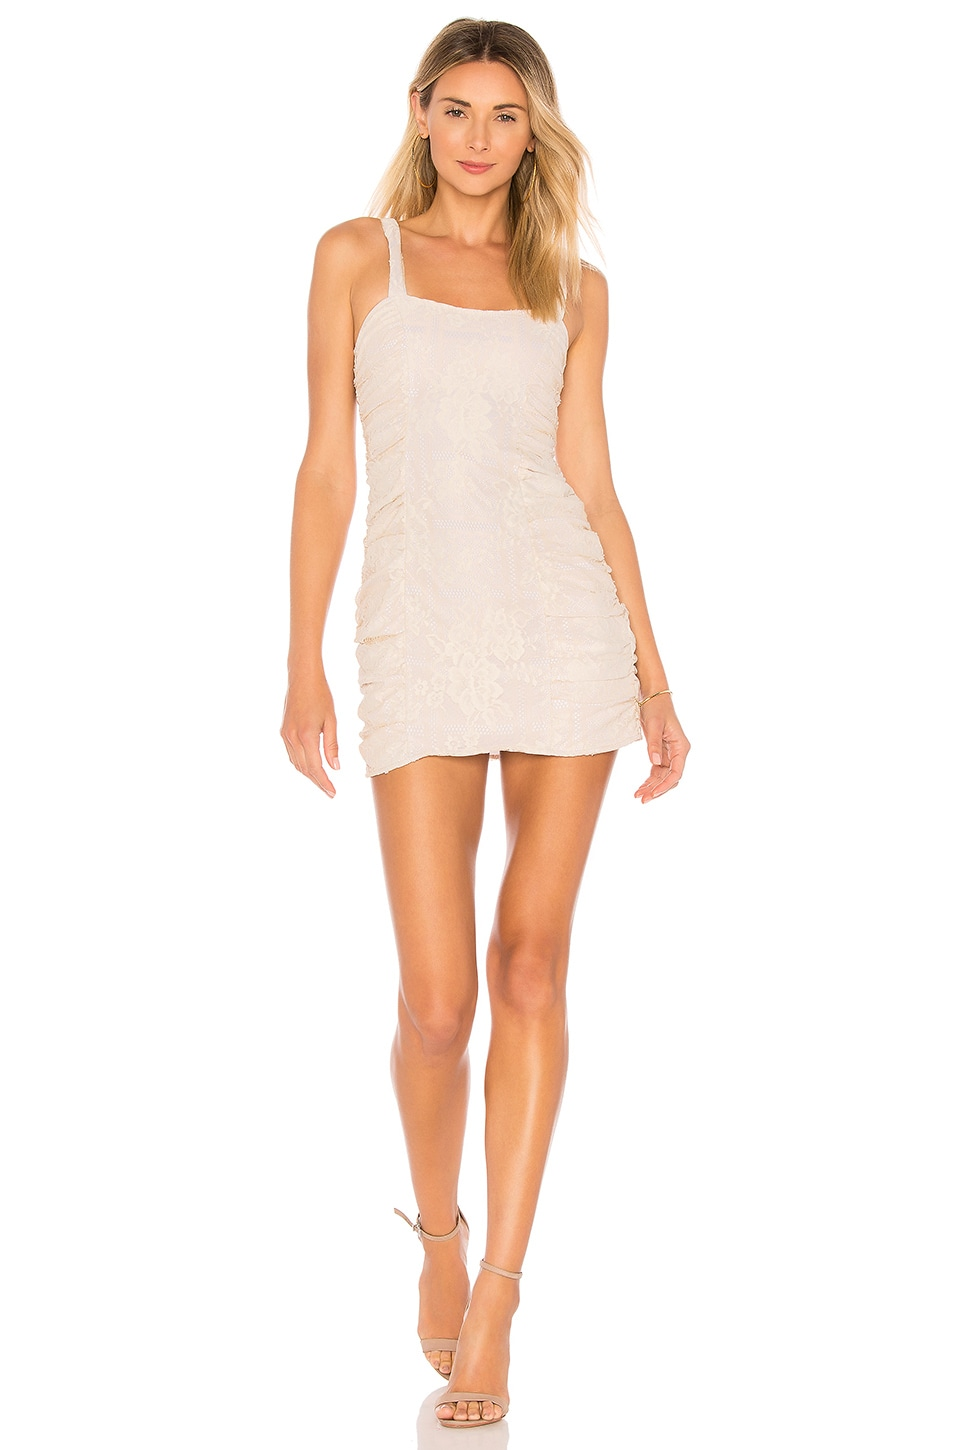 MAJORELLE Winston Dress in Chai